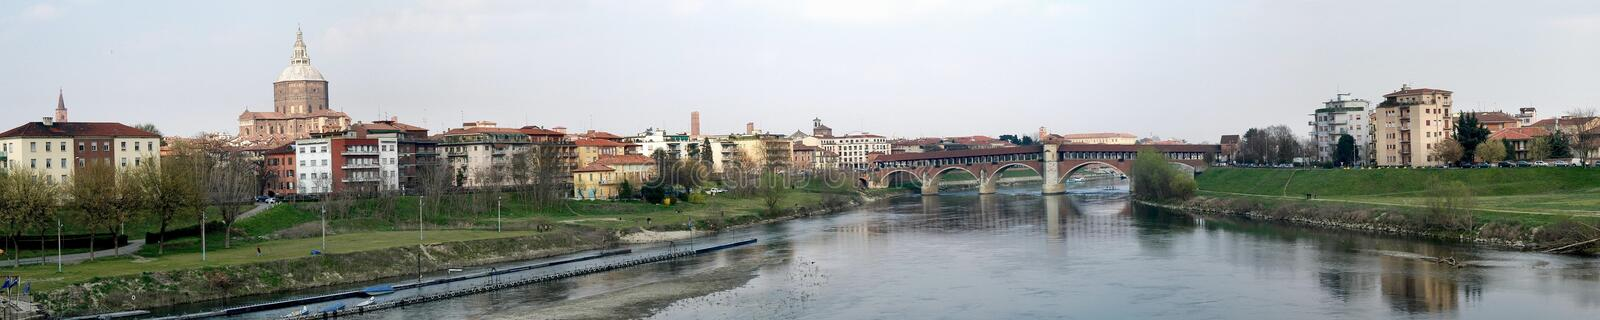 Download Pavia large panorama 2 stock photo. Image of italia, italy - 72658